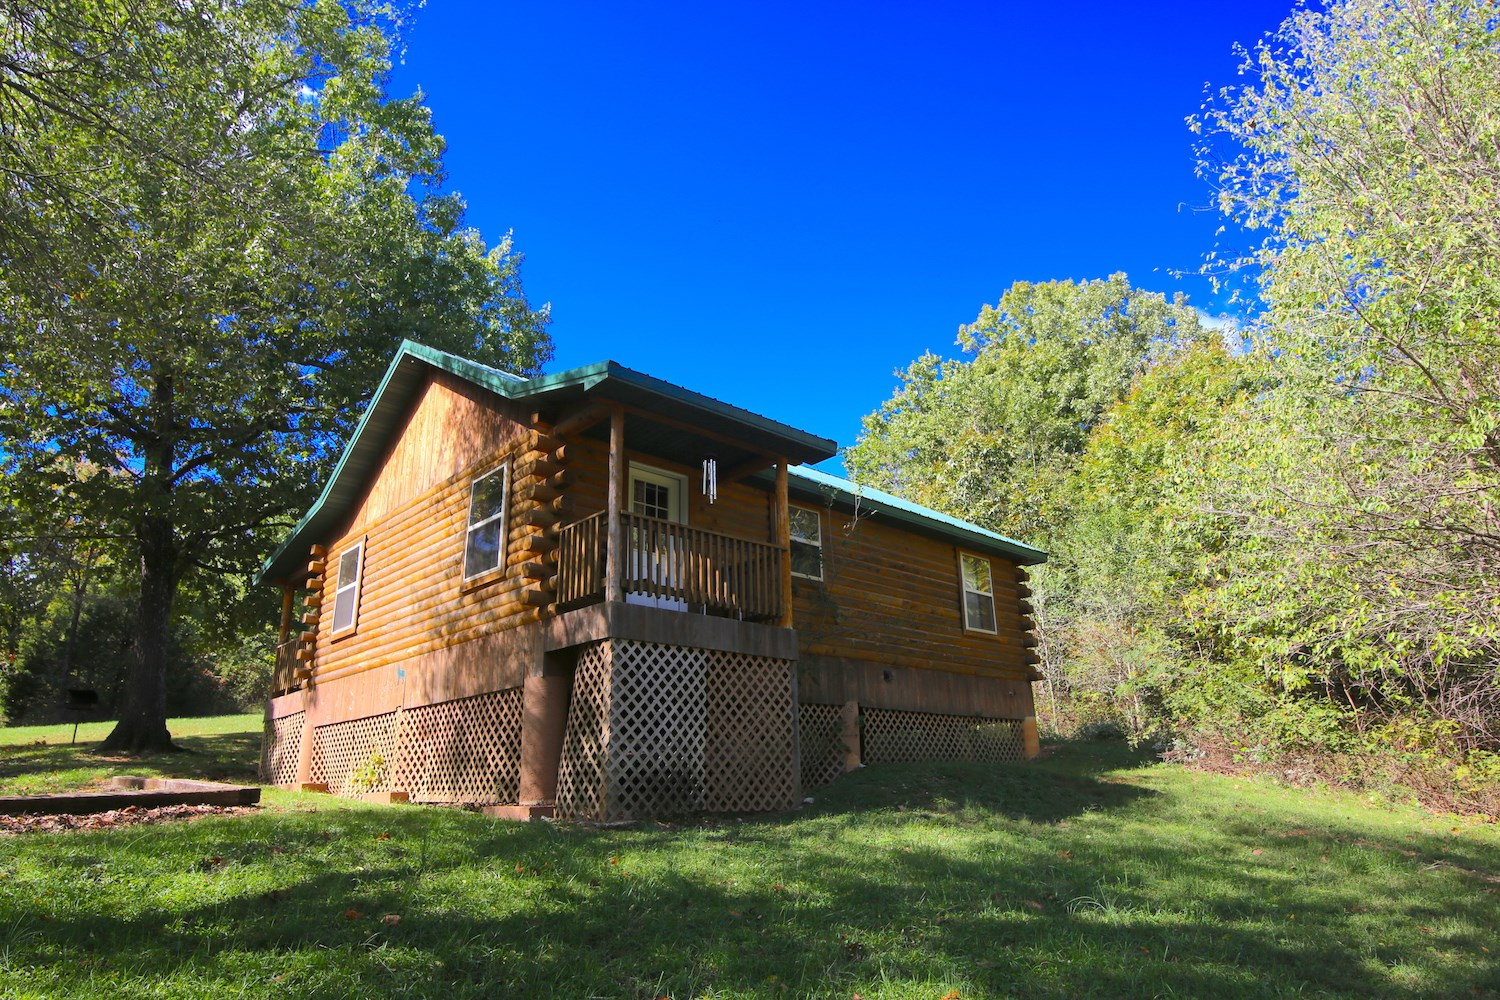 Commercial Log Cabin Rentals For Sale in Oregon County